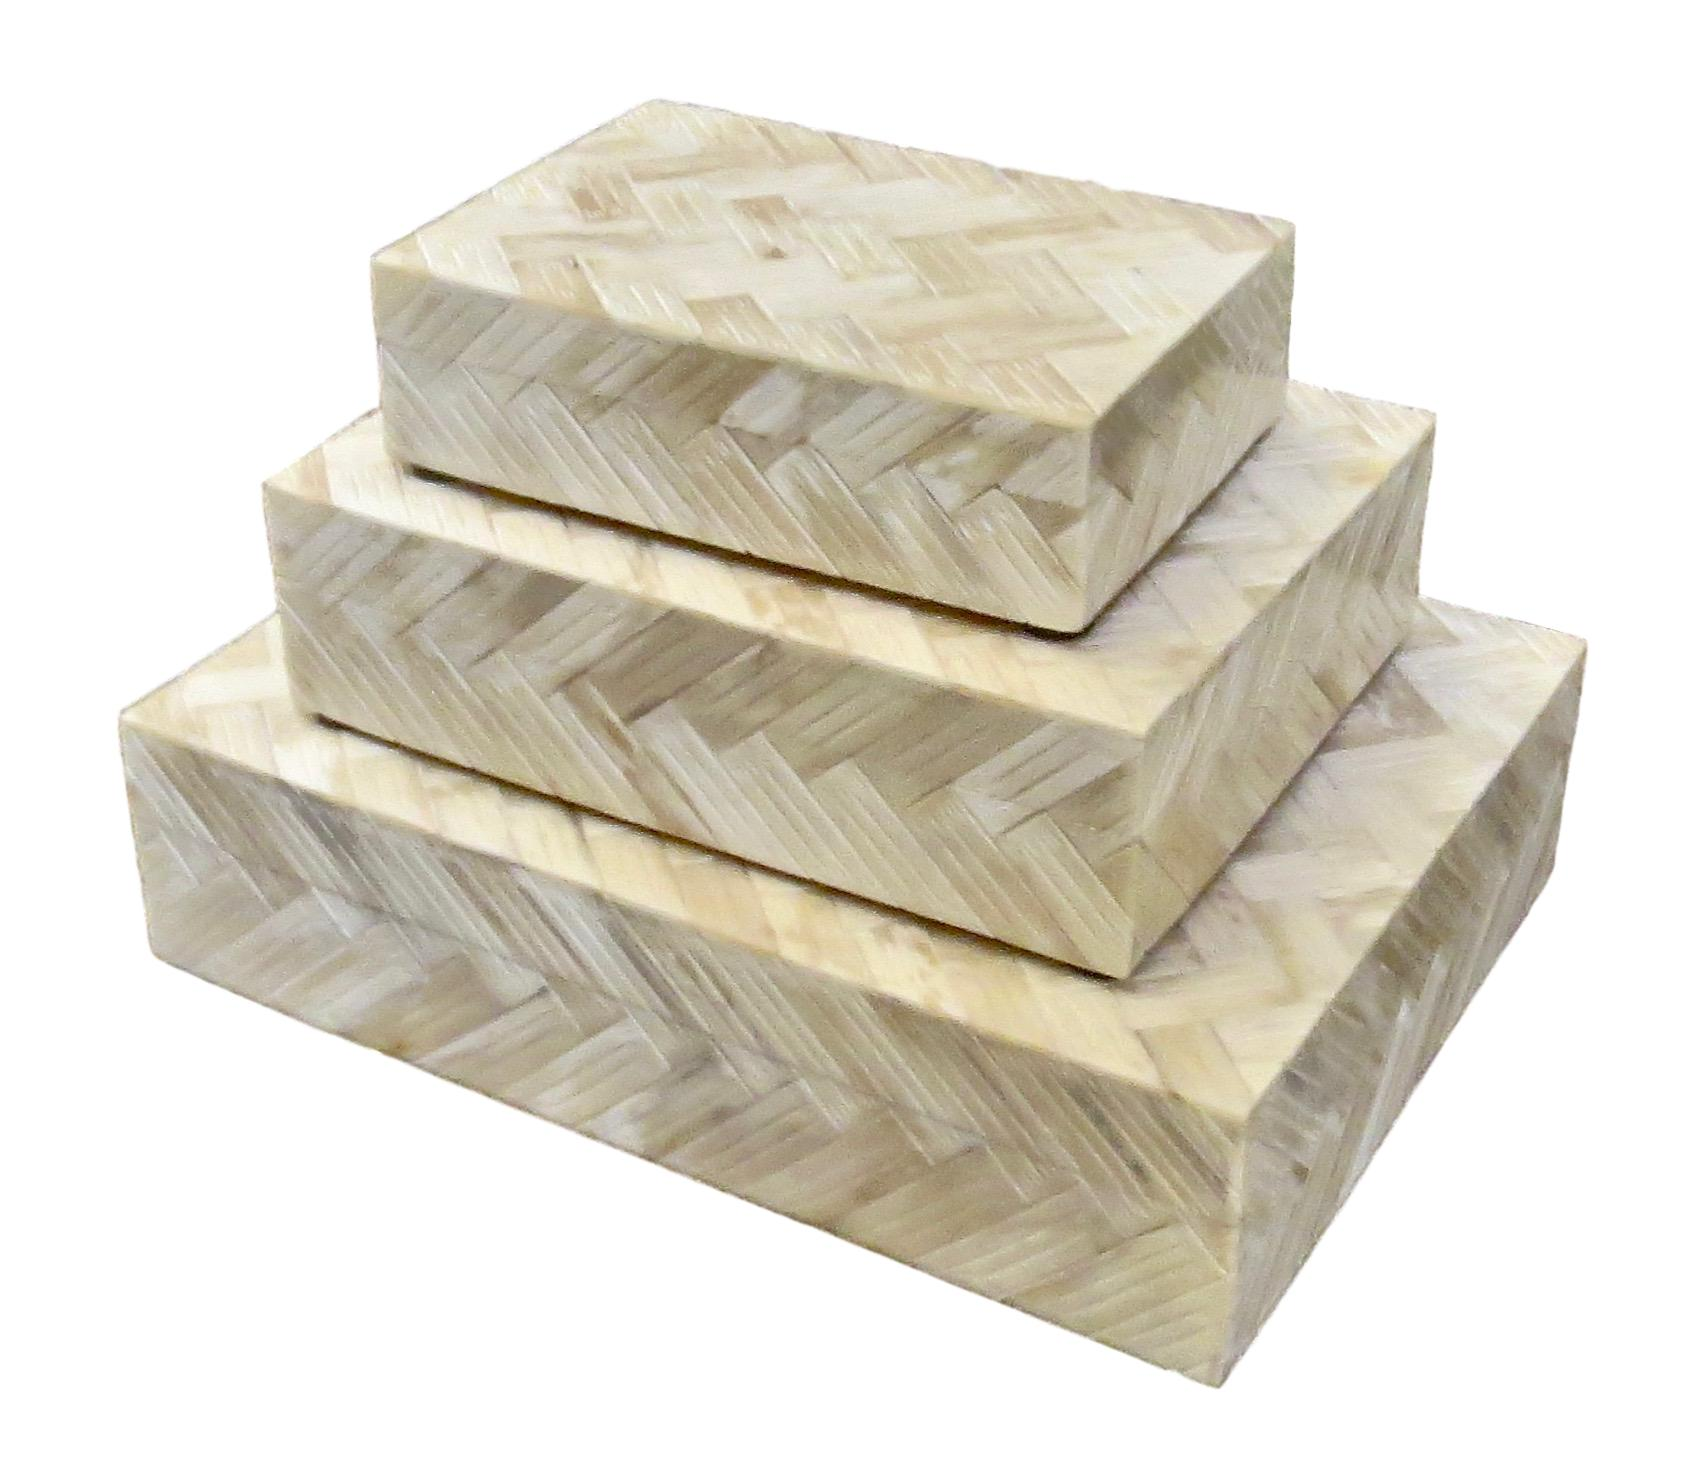 Herringbone Carved Bone Box   Large   12x9x3h   BiU222L  Medium   9x7x2.5h   BIU222M  Small   7x5x2h   BIU222S